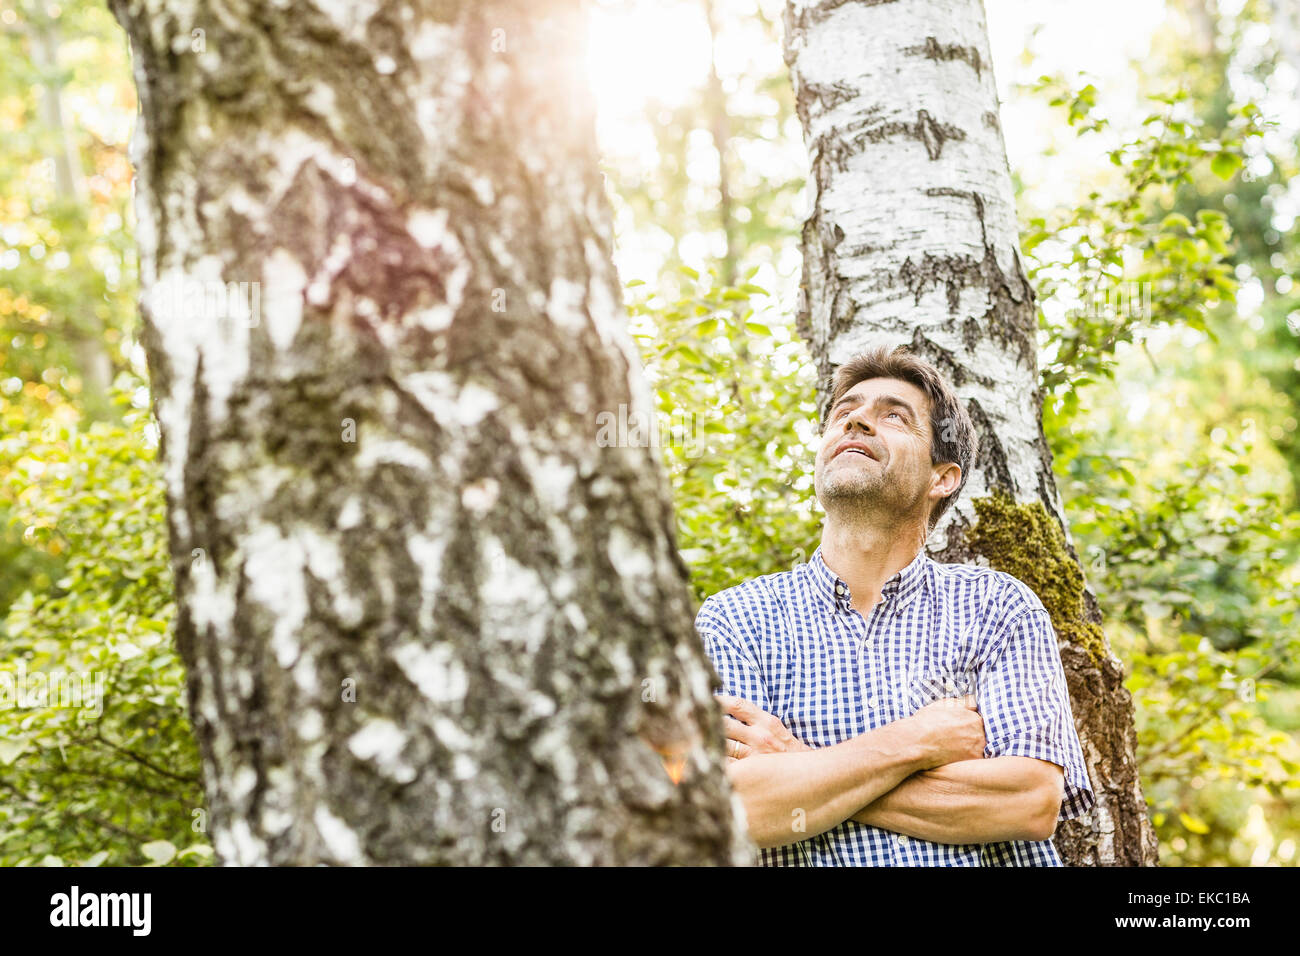 Mature man looking up at tree in garden - Stock Image